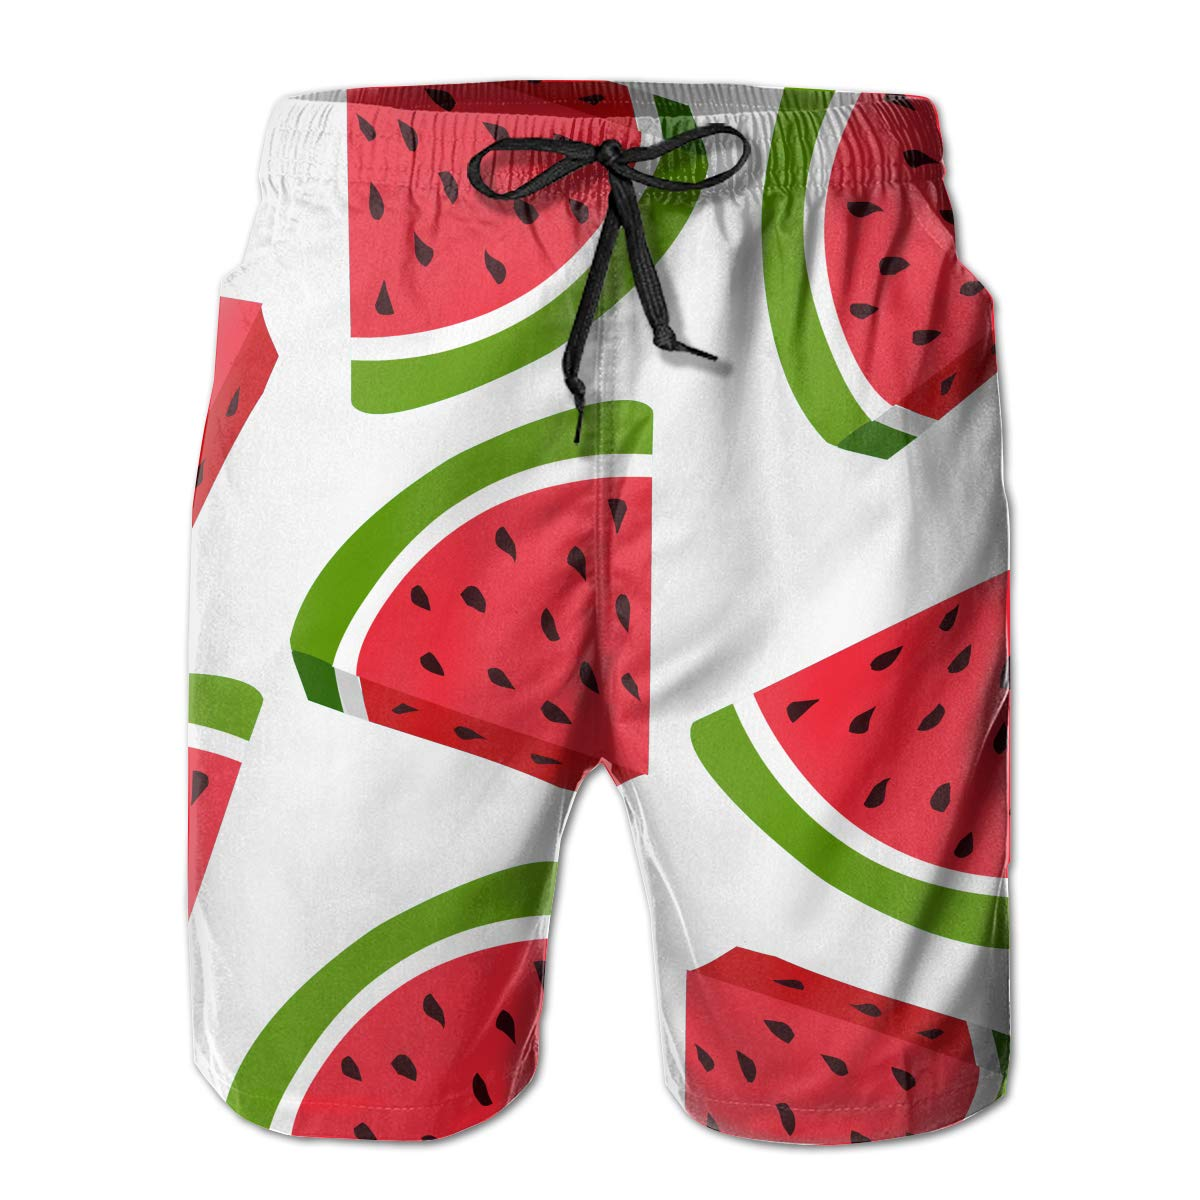 MikonsuChic Watermelon Fruit Pattern Mens Colorful Swim Trunks Beach Board Shorts with Lining White